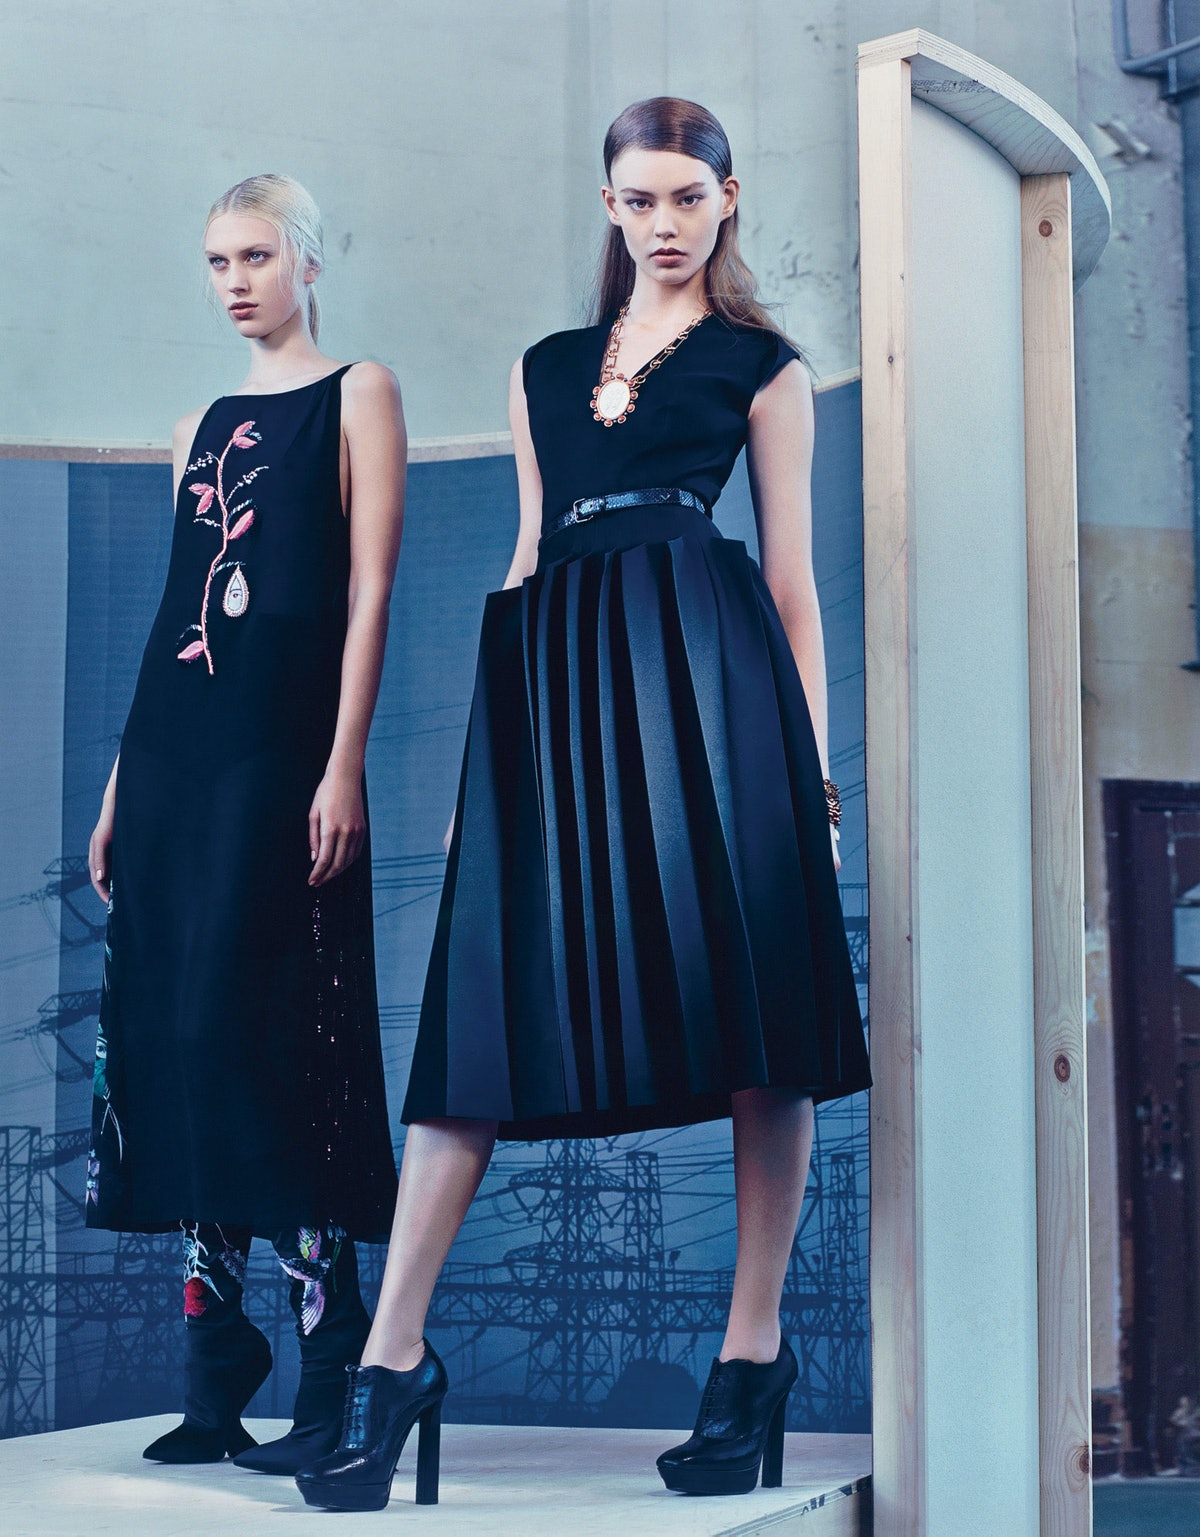 fass-craig-mcdean-fall-collections-04